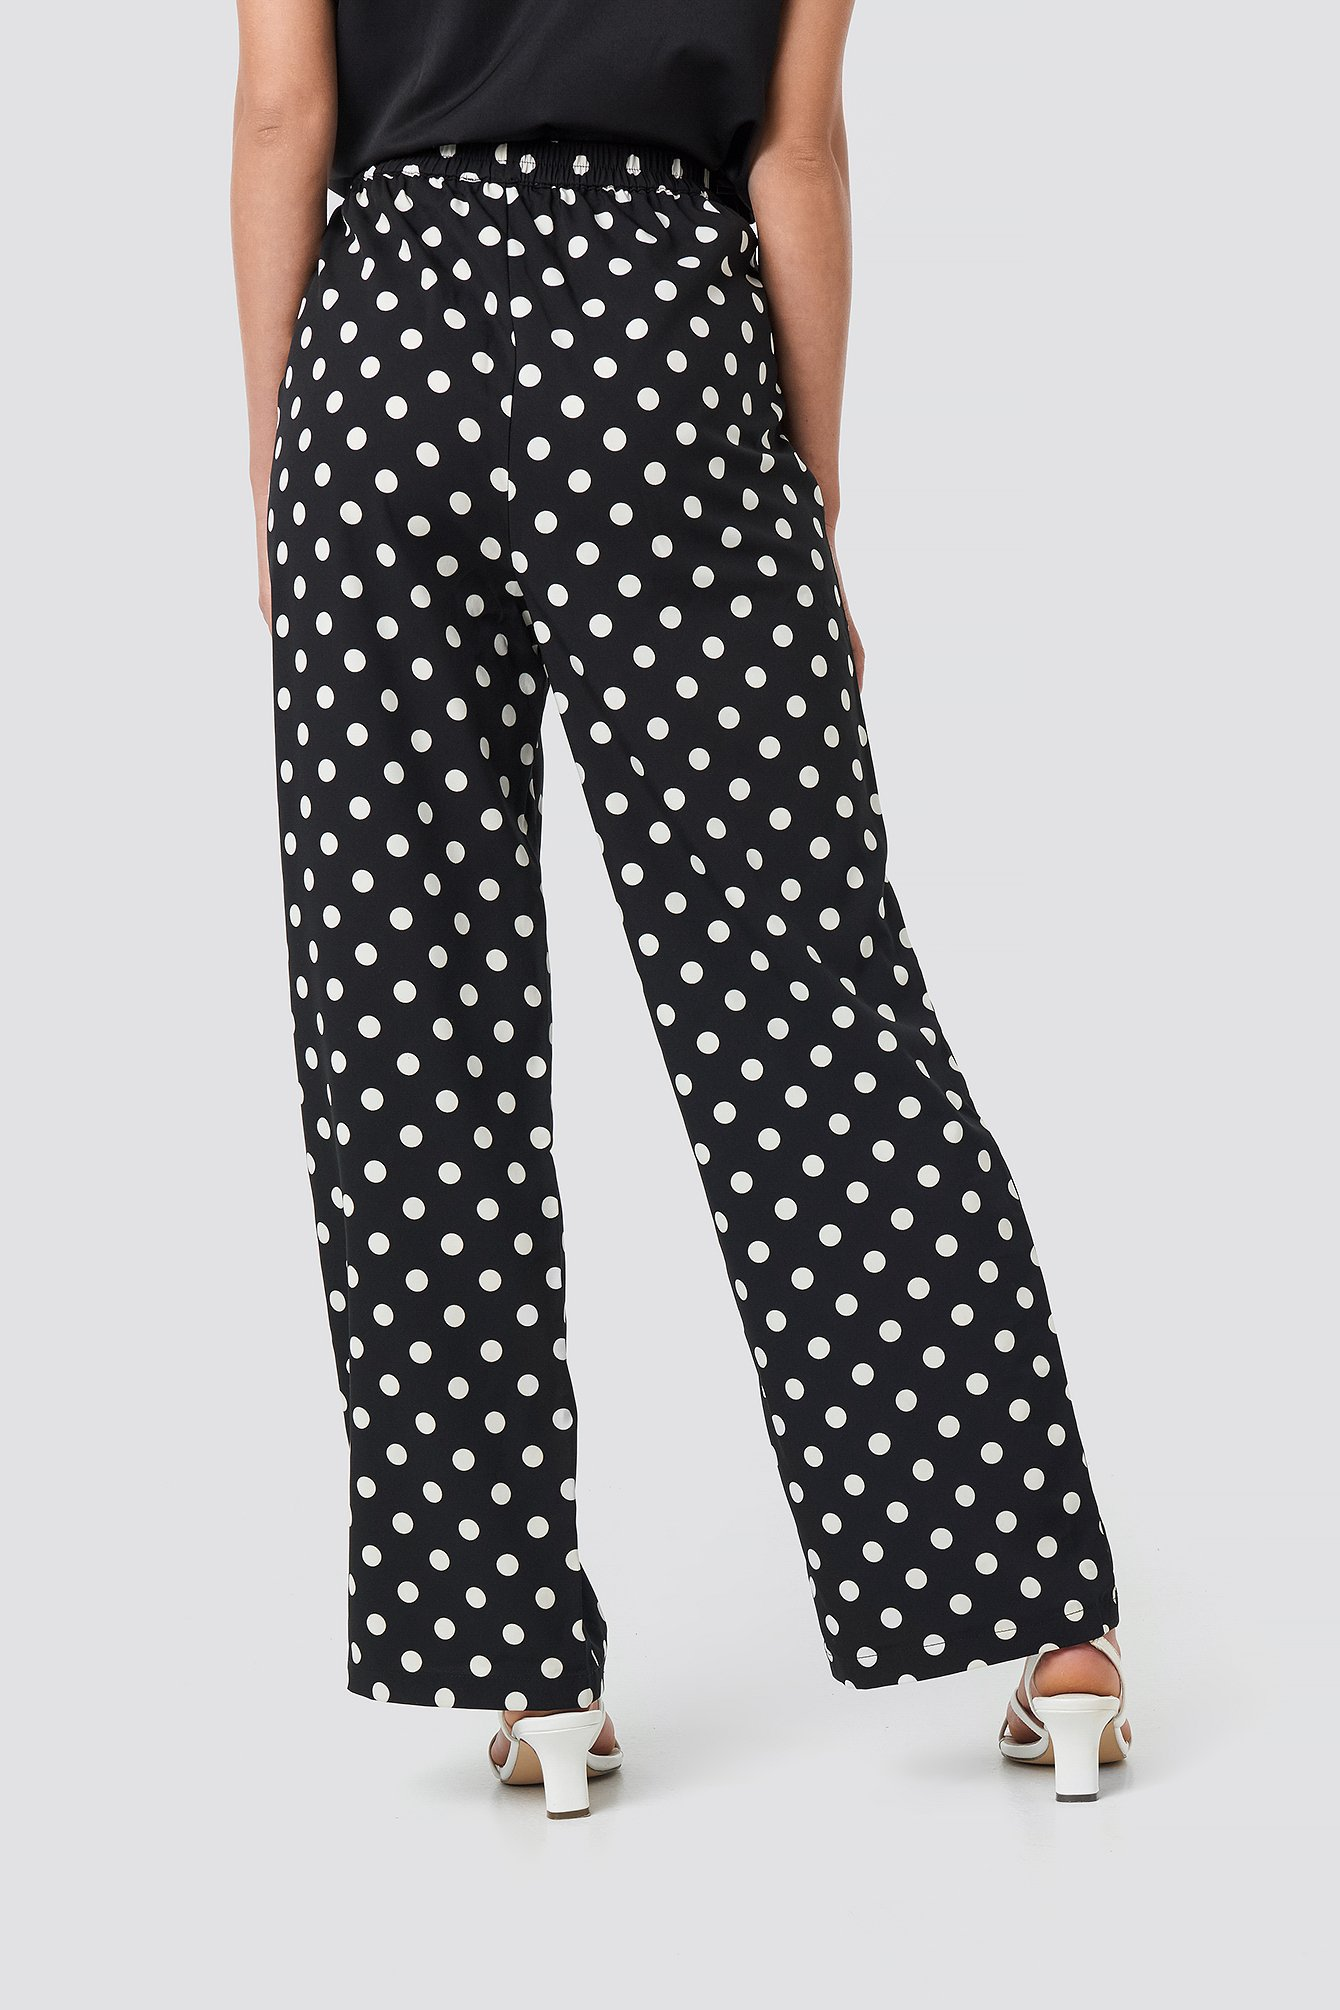 Dotted Wide Pants NA-KD.COM